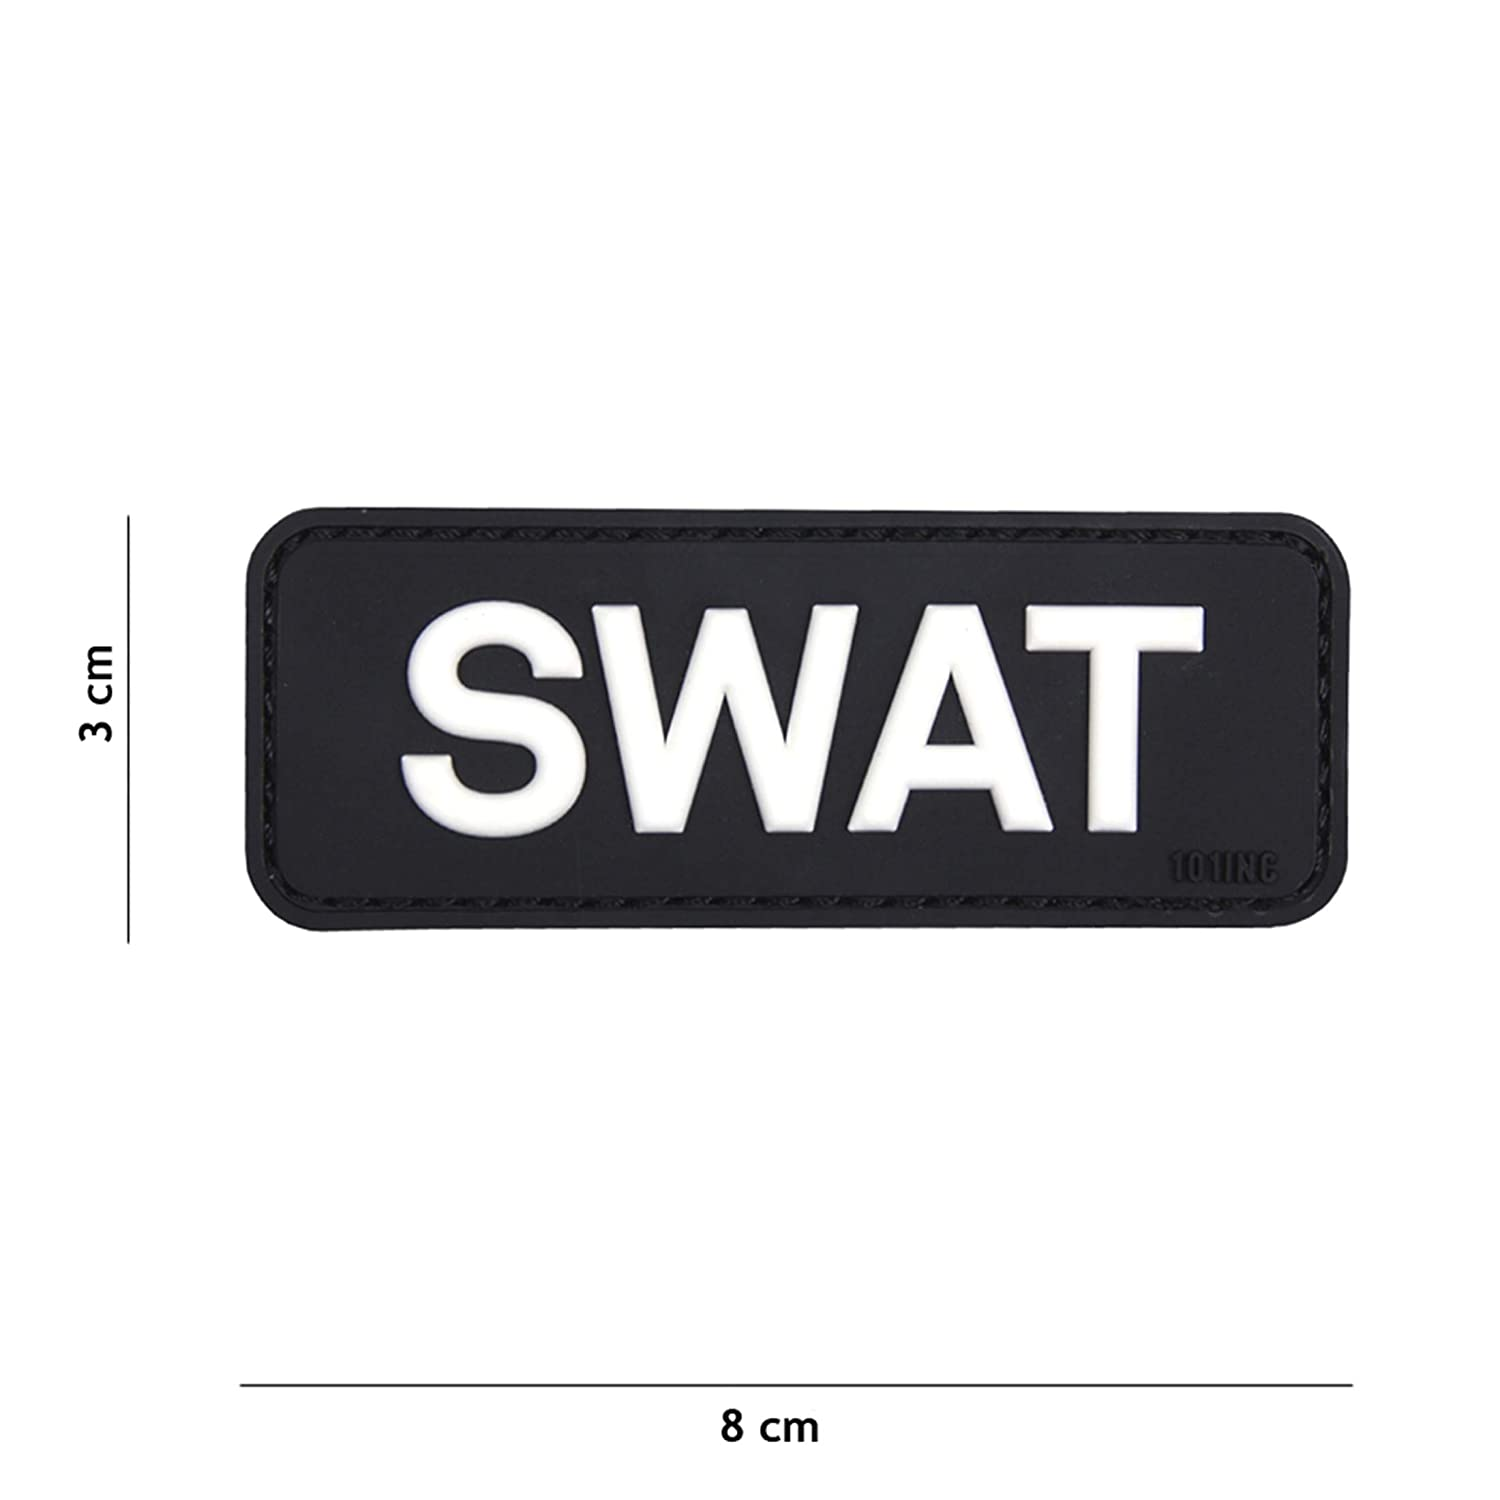 Tactical Attack SWAT schwarz #18065 Softair Sniper PVC Patch Logo Klett inkl gegenseite zum aufn/ähen Paintball Airsoft Abzeichen Fun Outdoor Freizeit